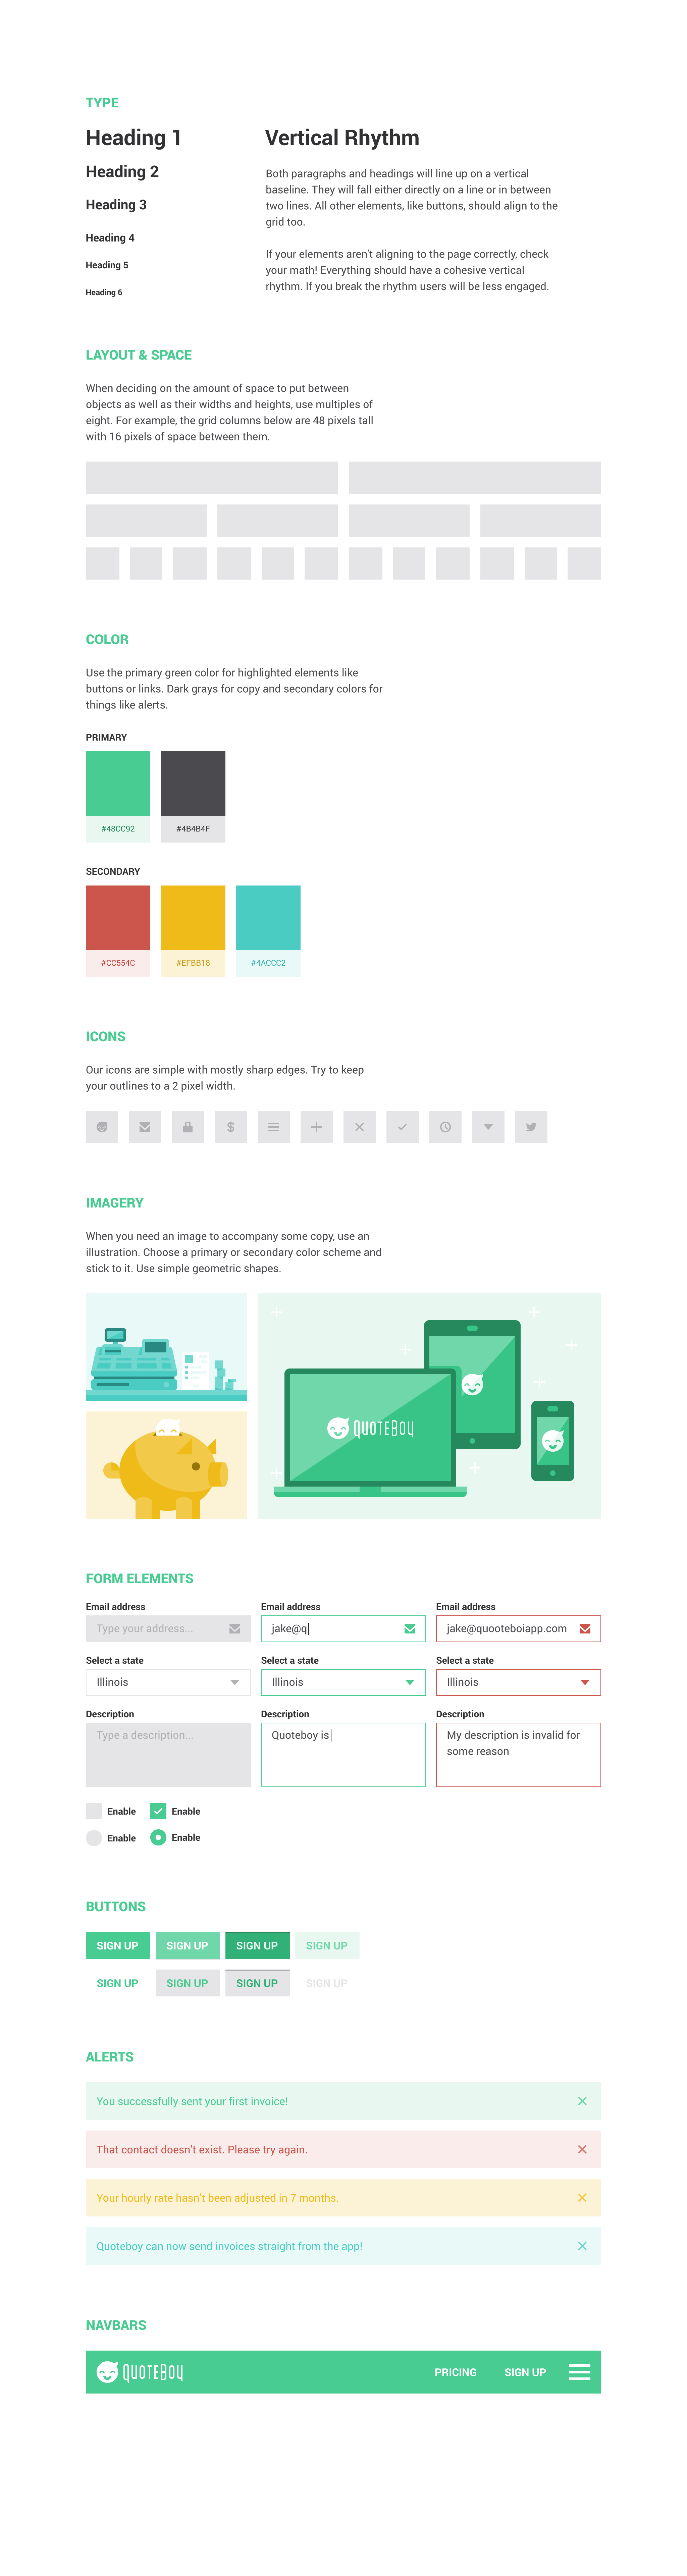 QuoteBoy Web Design Style Guide - image 2 - student project